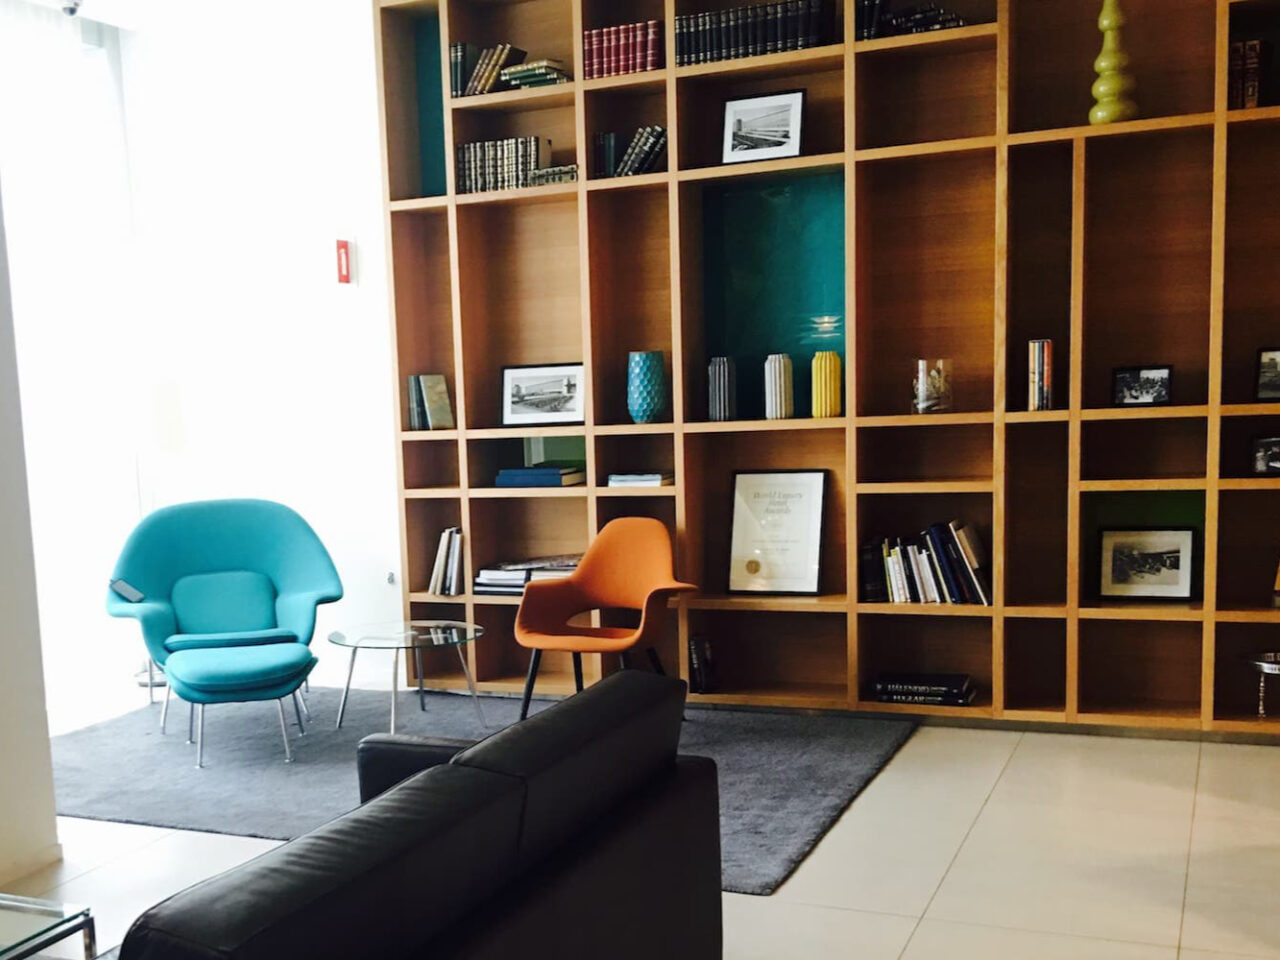 D – Airport Hotel Library